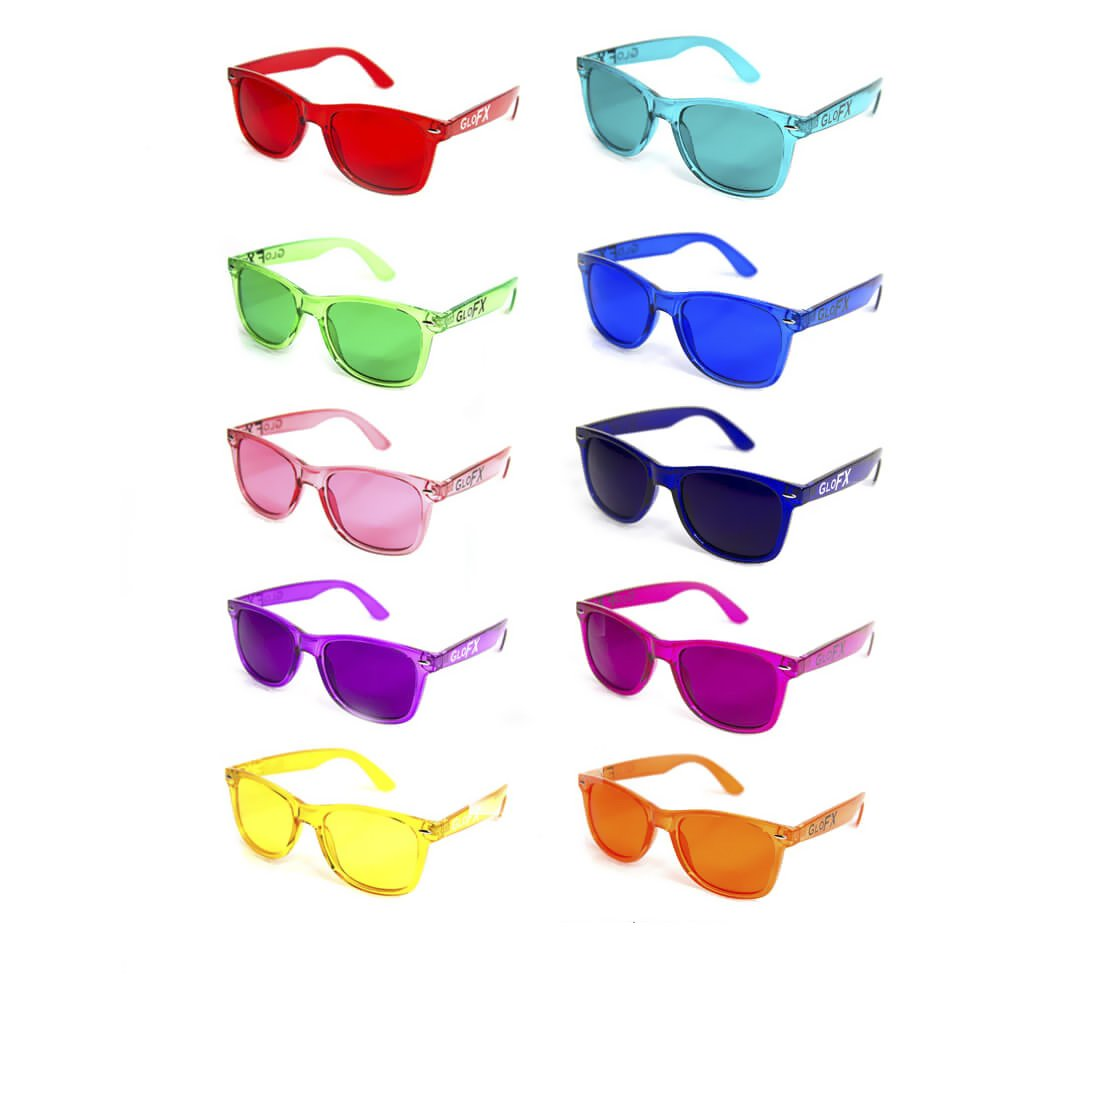 GloFX Color Therapy Glasses 10-Pack Chakra Glasses Chromatherapy Glasses Light Therapy by GloFX